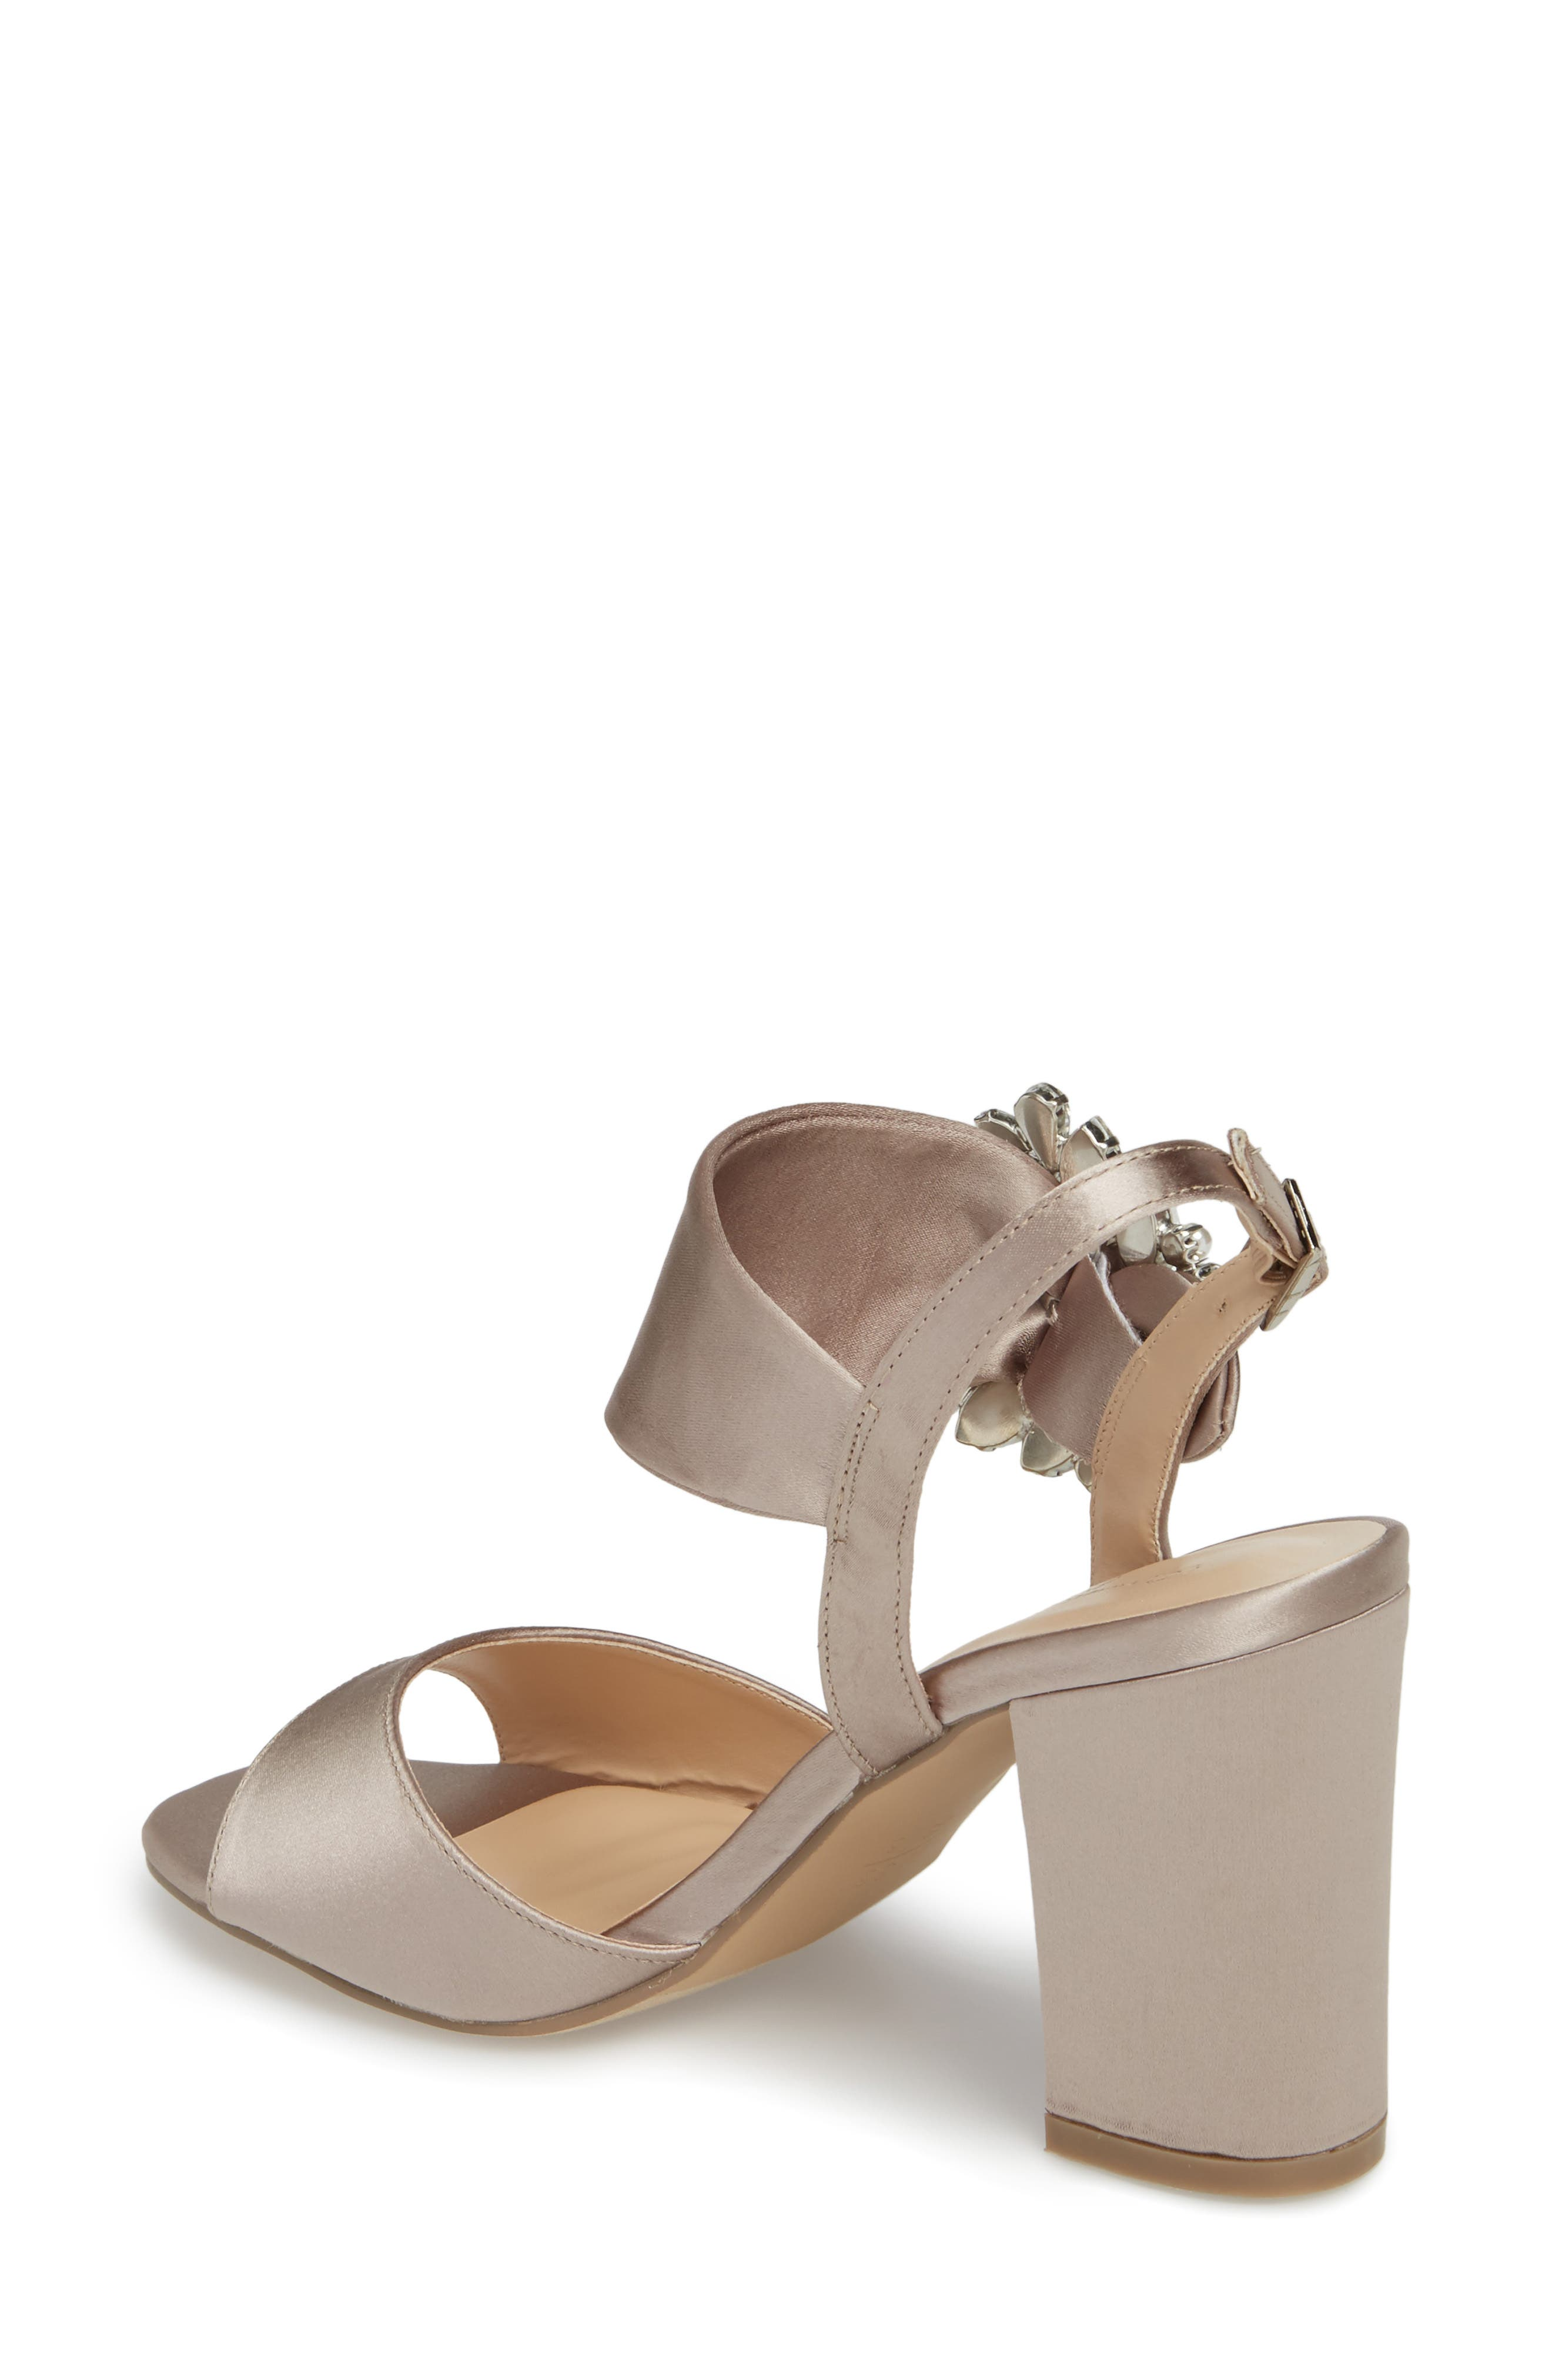 Manhattan Embellished Sandal,                             Alternate thumbnail 2, color,                             TAUPE SATIN